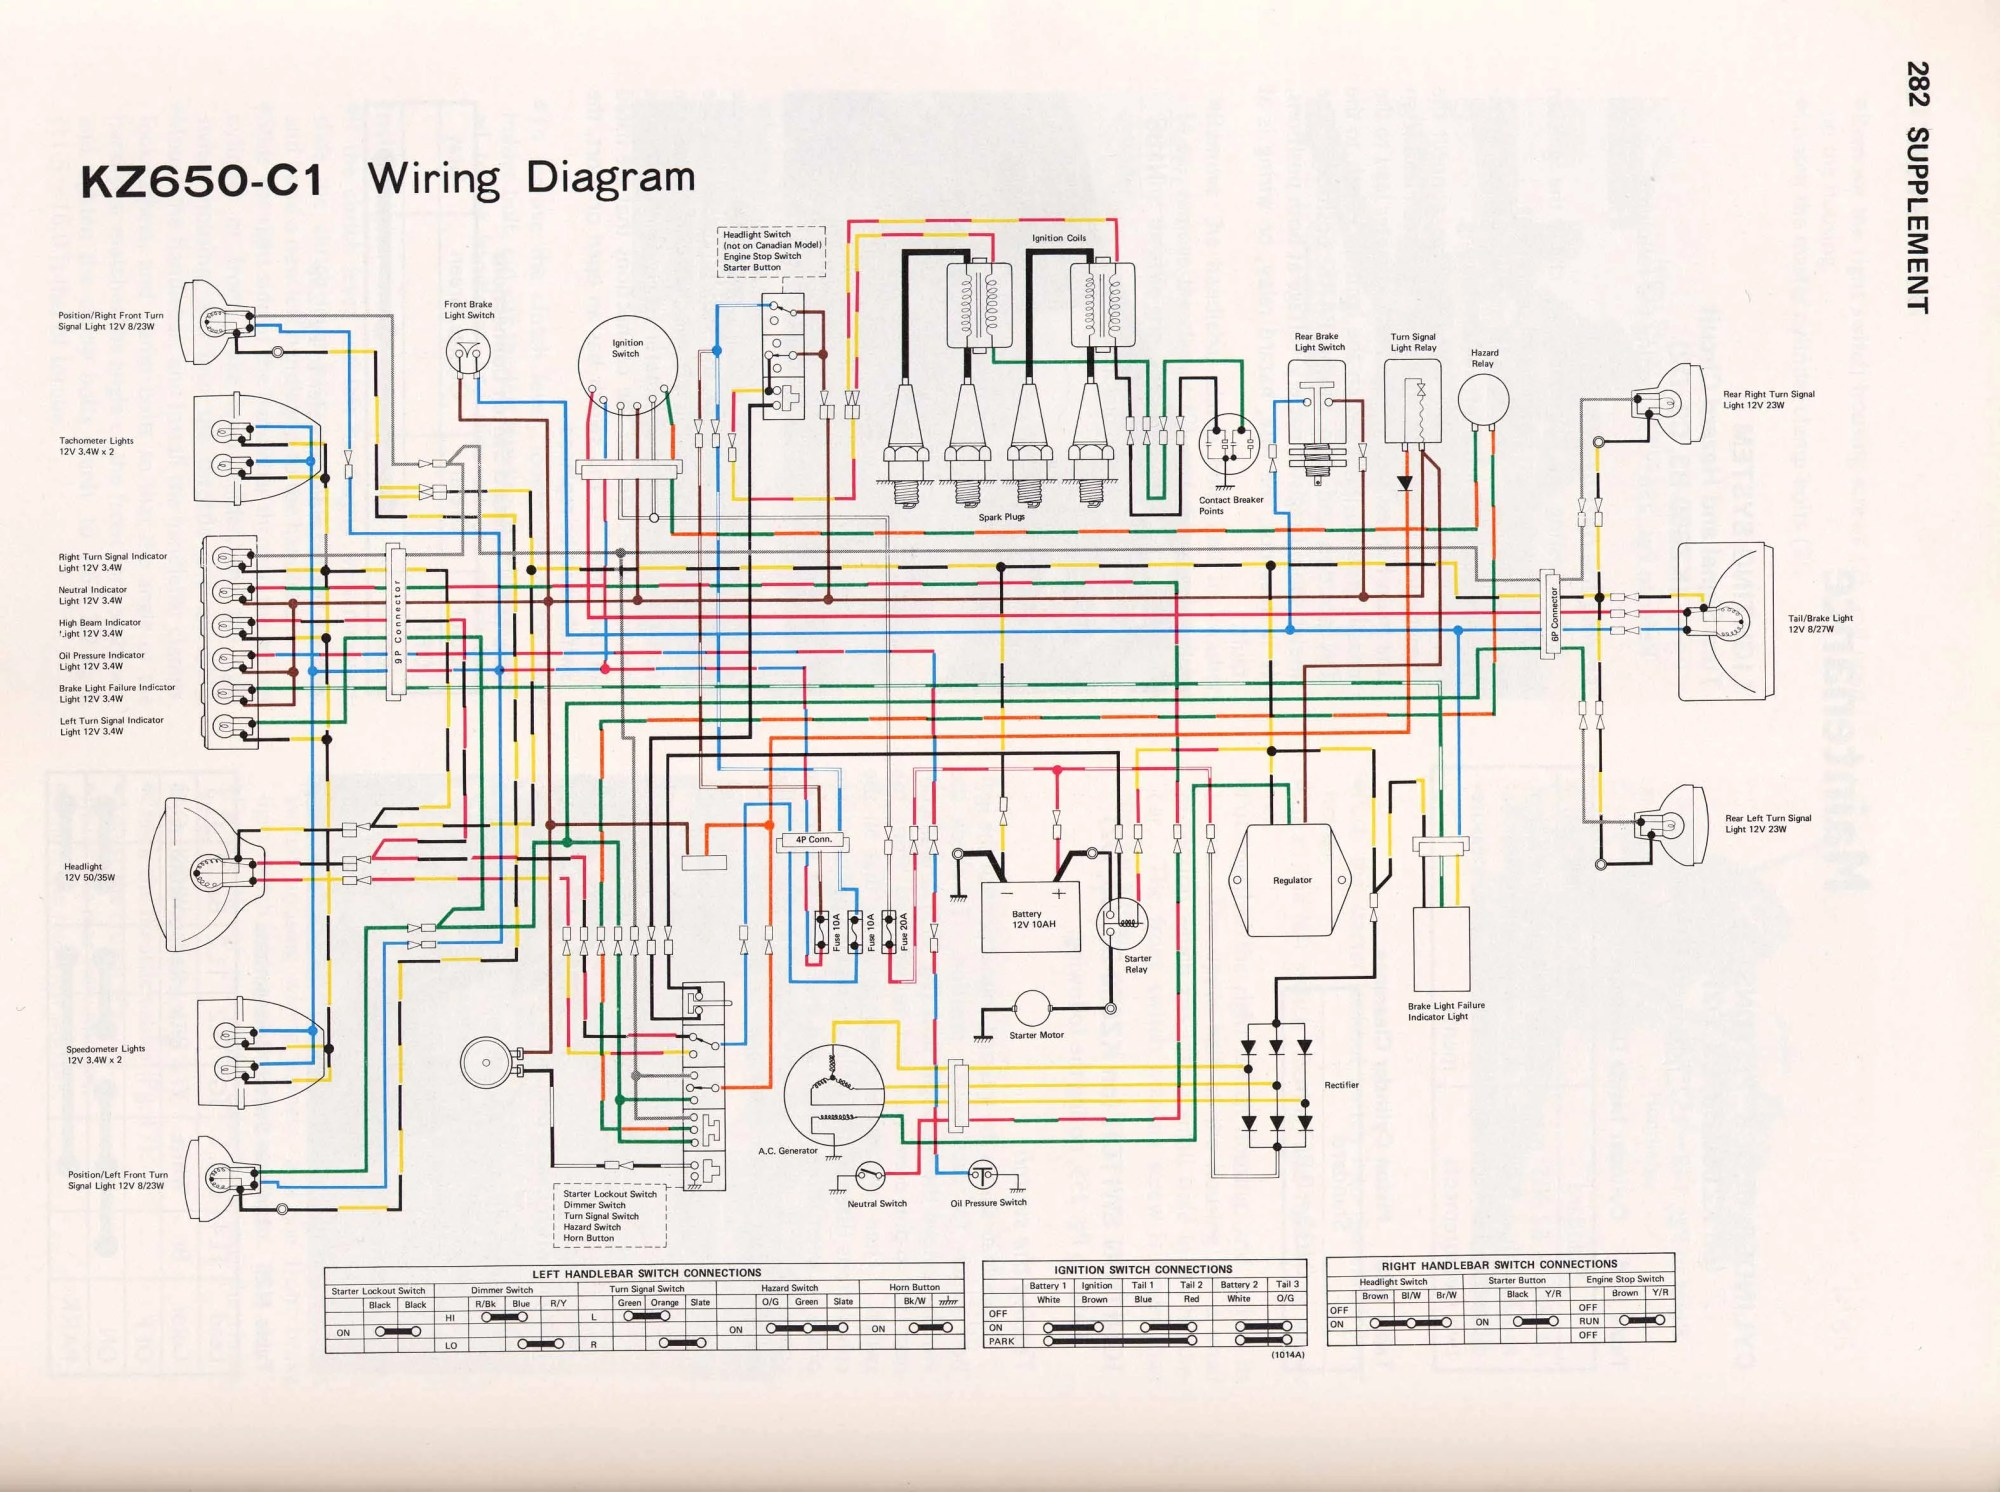 hight resolution of kz650 info wiring diagrams 1975 honda cb750 wiring diagram on kawasaki 1978 kz650 wiring diagram